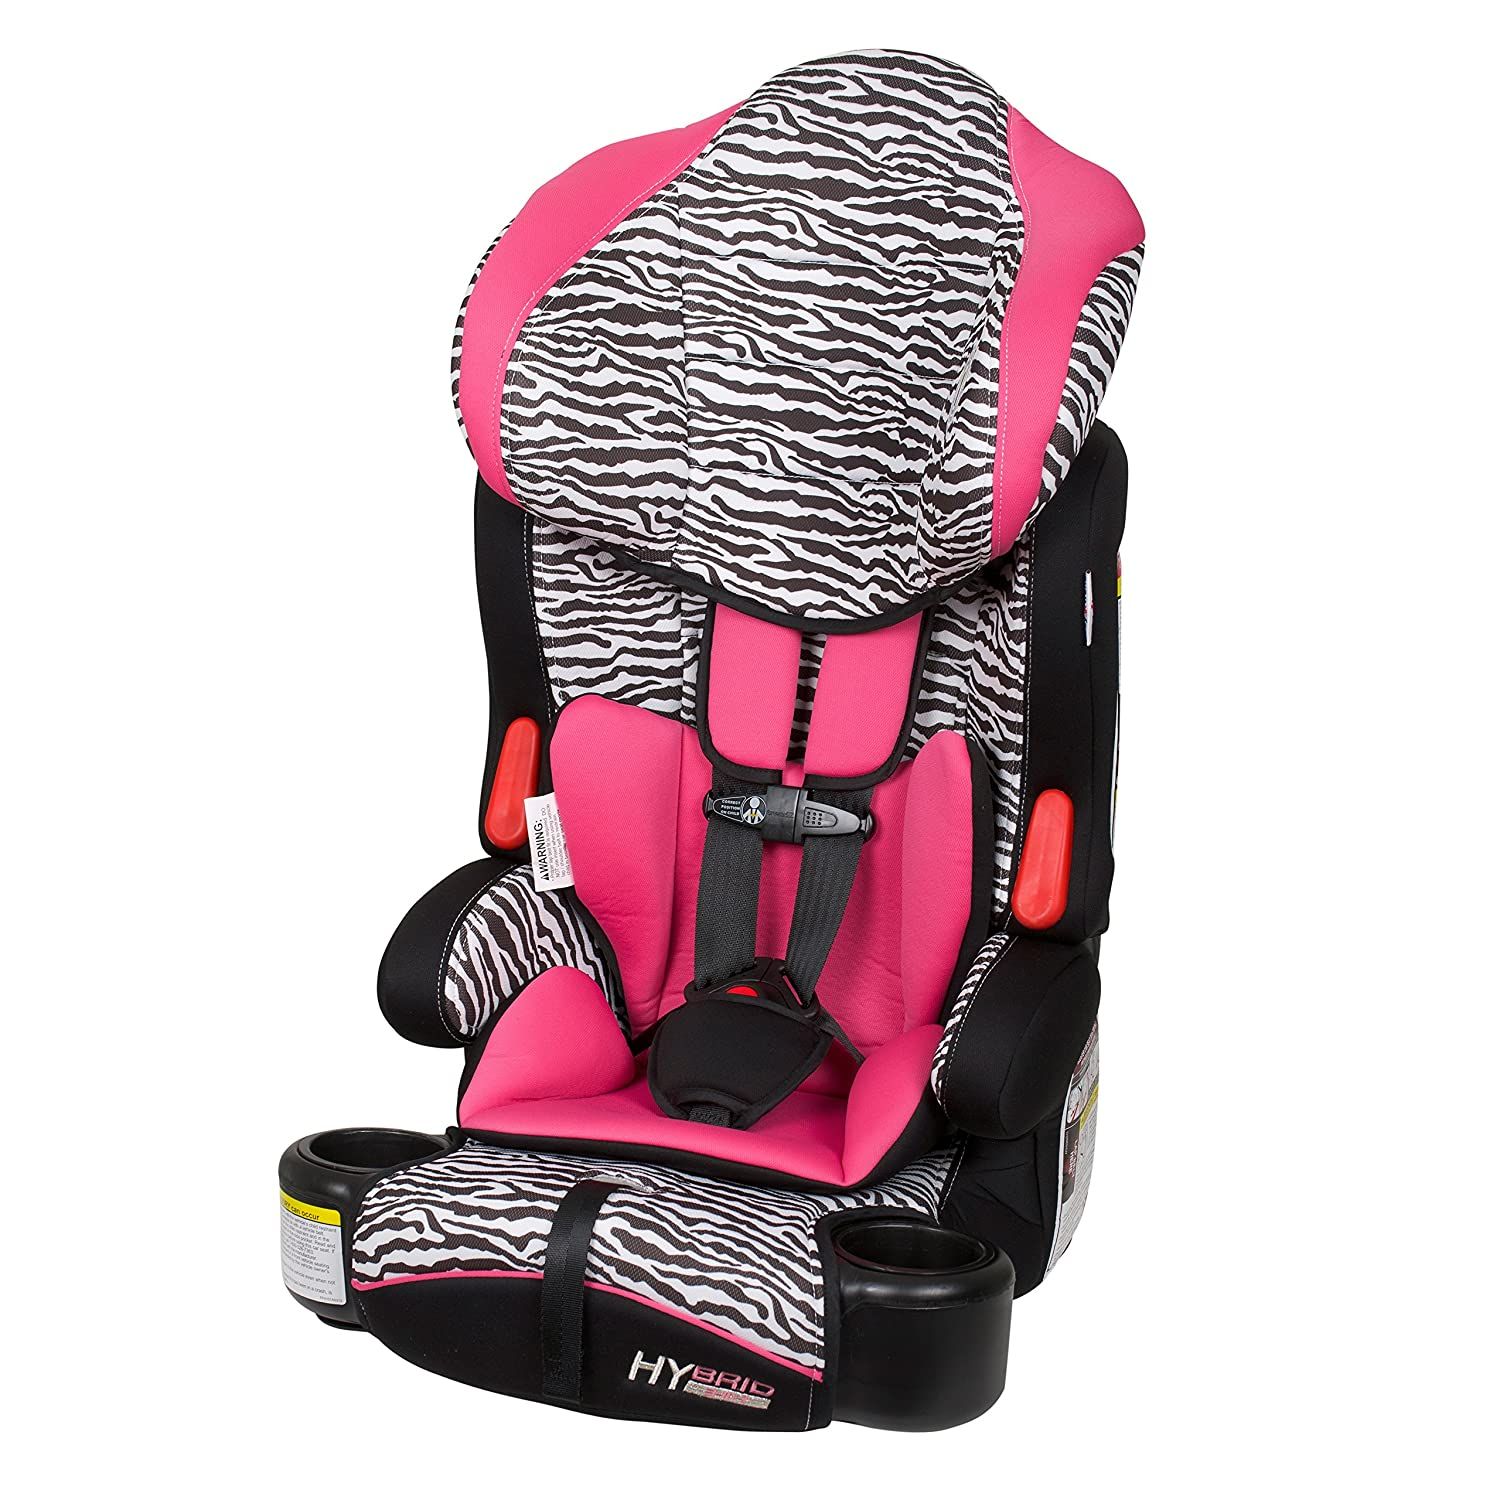 Amazon Baby Trend Hybrid Booster Car Seat Carrie